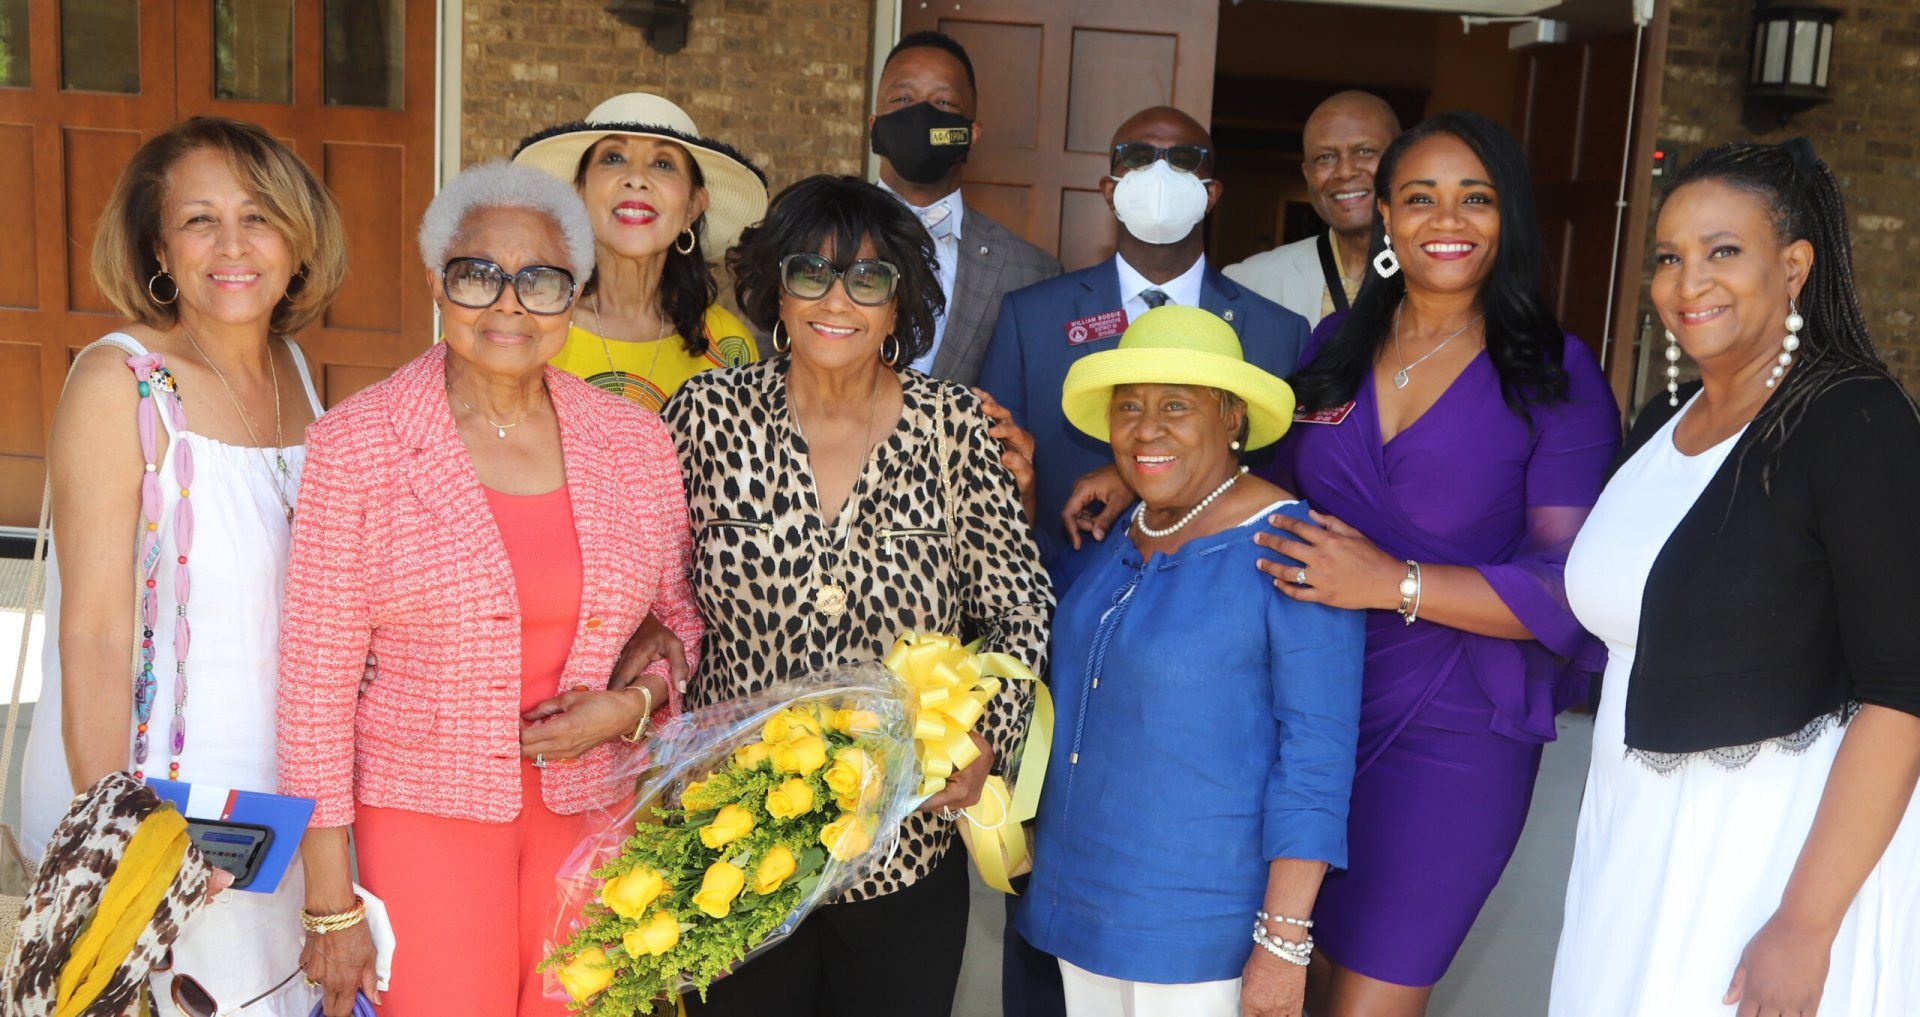 On June 30, 2021, friends, family, and political leaders gathered as Atlanta's Henrietta P. Antoinin was honored by the State of Georgia for her service and activism. Pictured here are, left to right: Linda Gulley, Billye Aaron, Carolyn Young, honoree Henrietta P. Antoinin, Georgia State Representative Derrick Jackson (District 64), 2022 Democratic Candidate for Georgia Labor Commissioner William K. Boddie, Jr., Ruby Lucas, Don Rivers, Georgia State Representative Donna McLeod (District 105), and Sophie Gibson at Friendship Baptist Church on Walnut Street in southwest Atlanta, Georgia. Photo by John B. Smith, Jr.